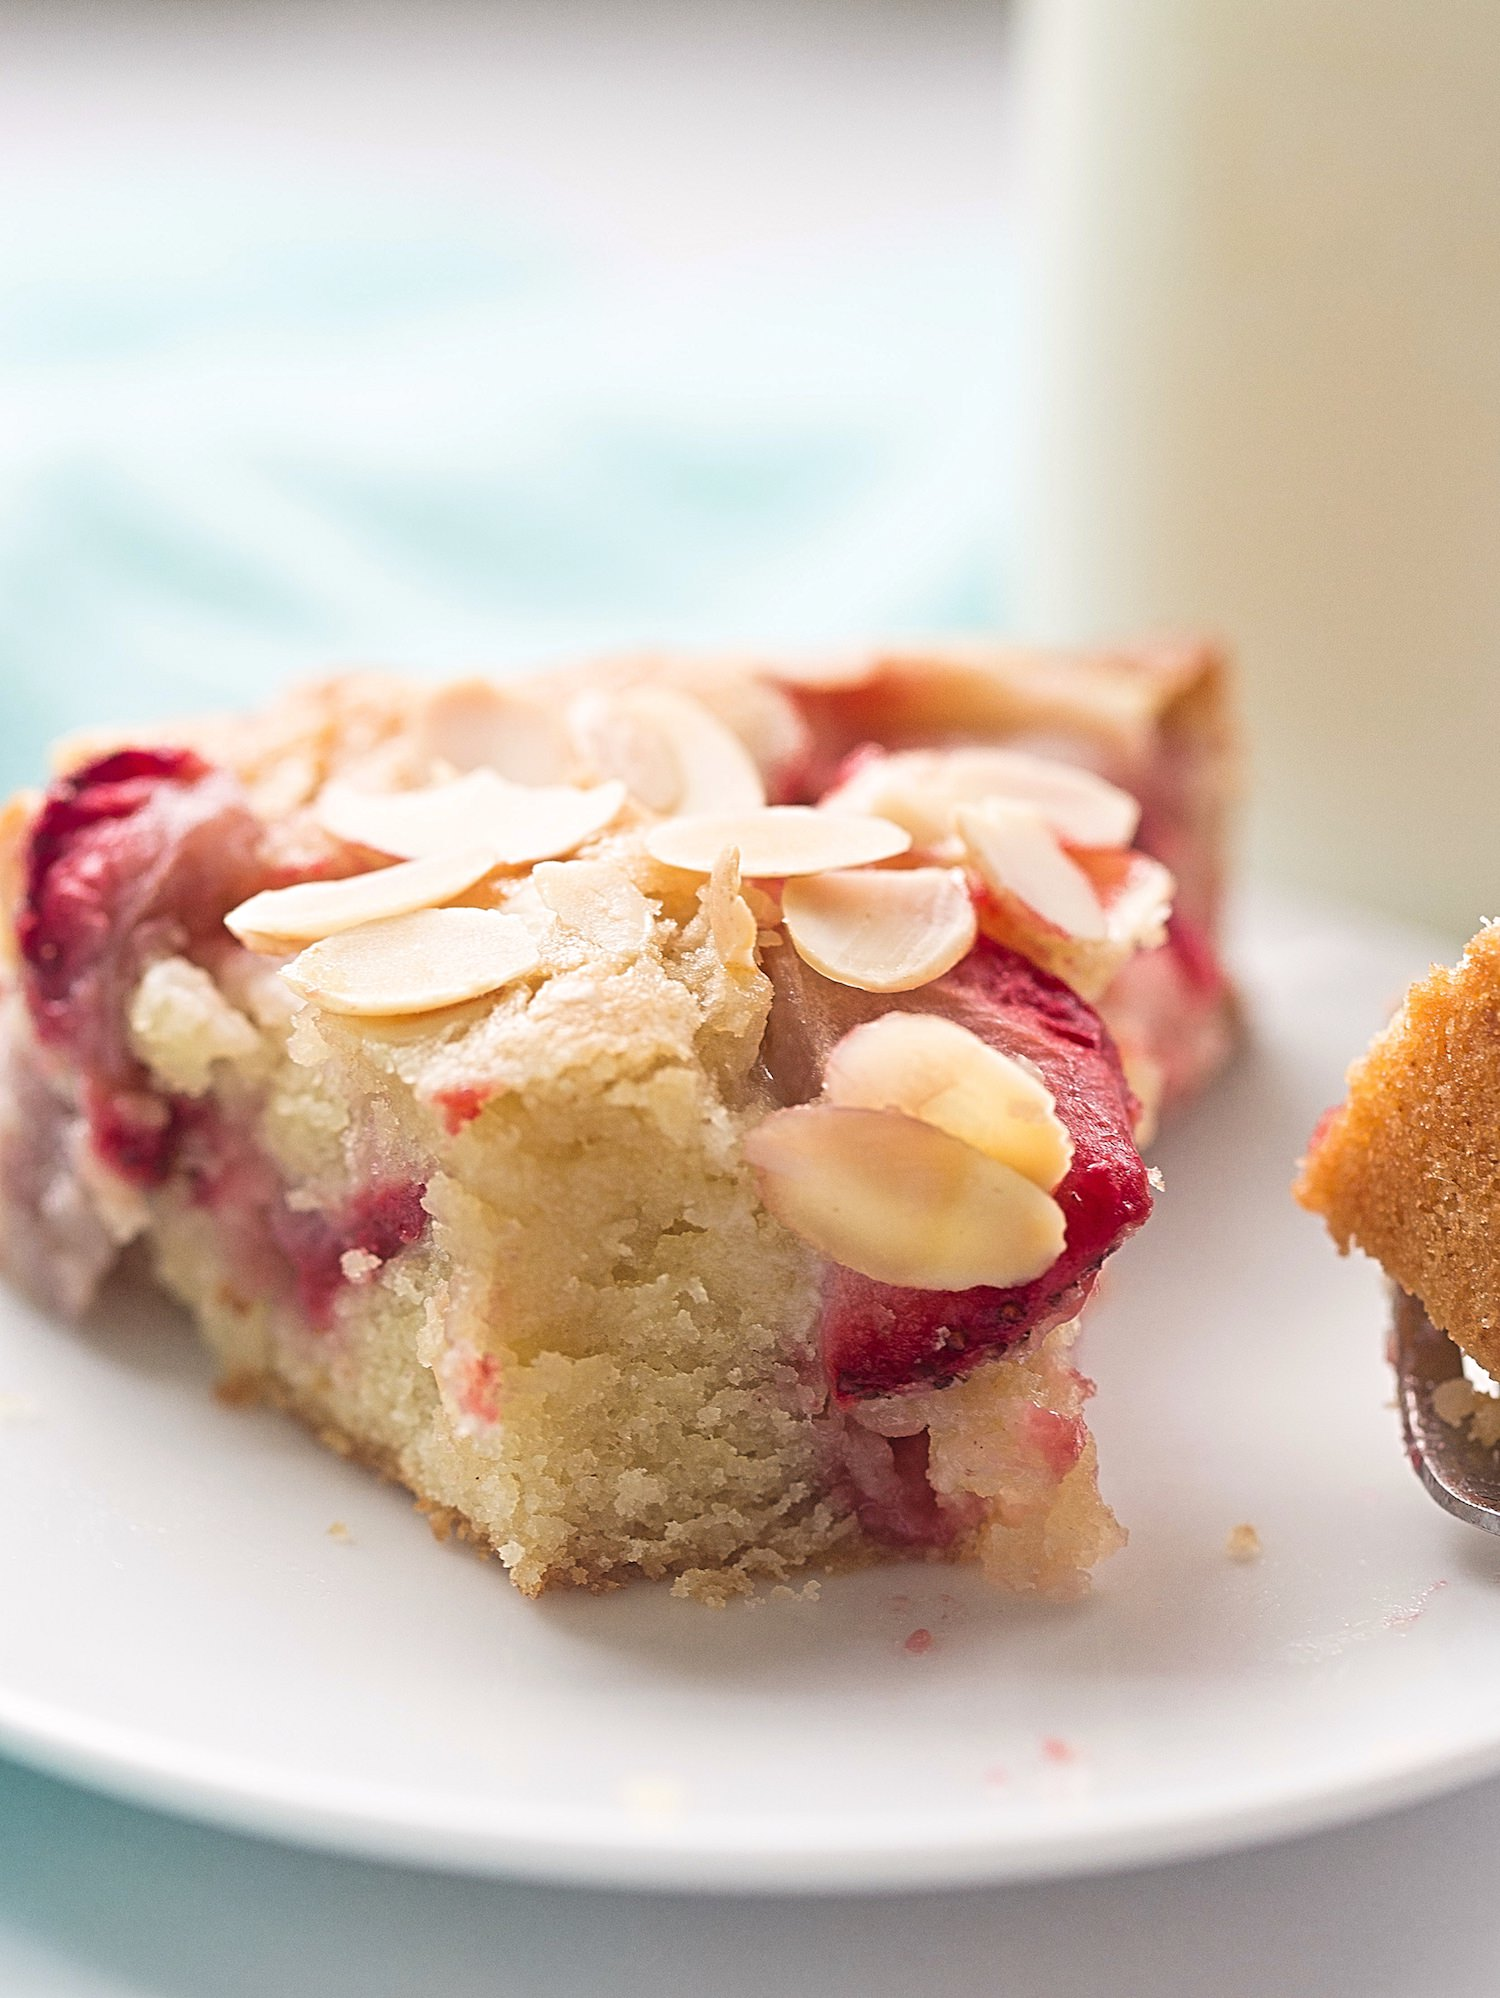 Simple Strawberry Almond Cake + Video: moist, soft, easy almond flavored cake with fresh strawberries and sliced almonds for awesome flavor and crunch. | TrufflesandTrends.com